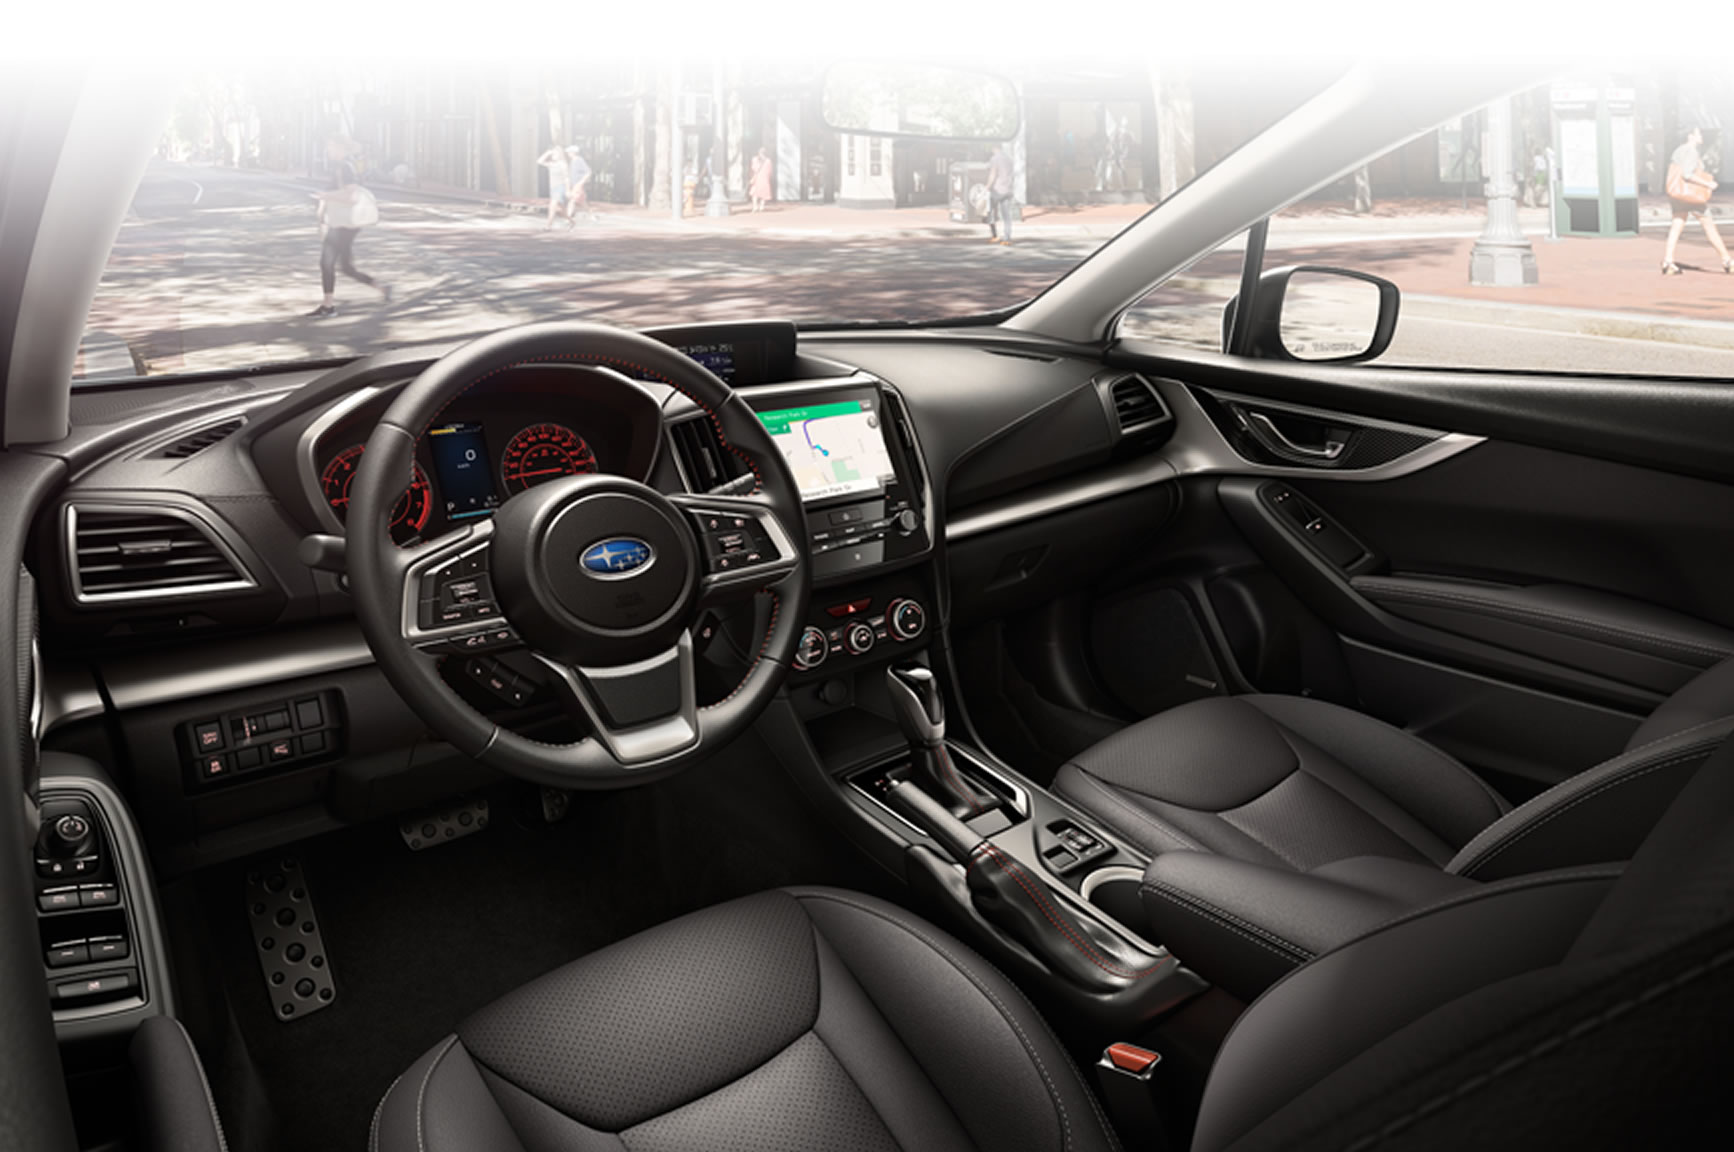 Attractive 2017 Impreza Interior